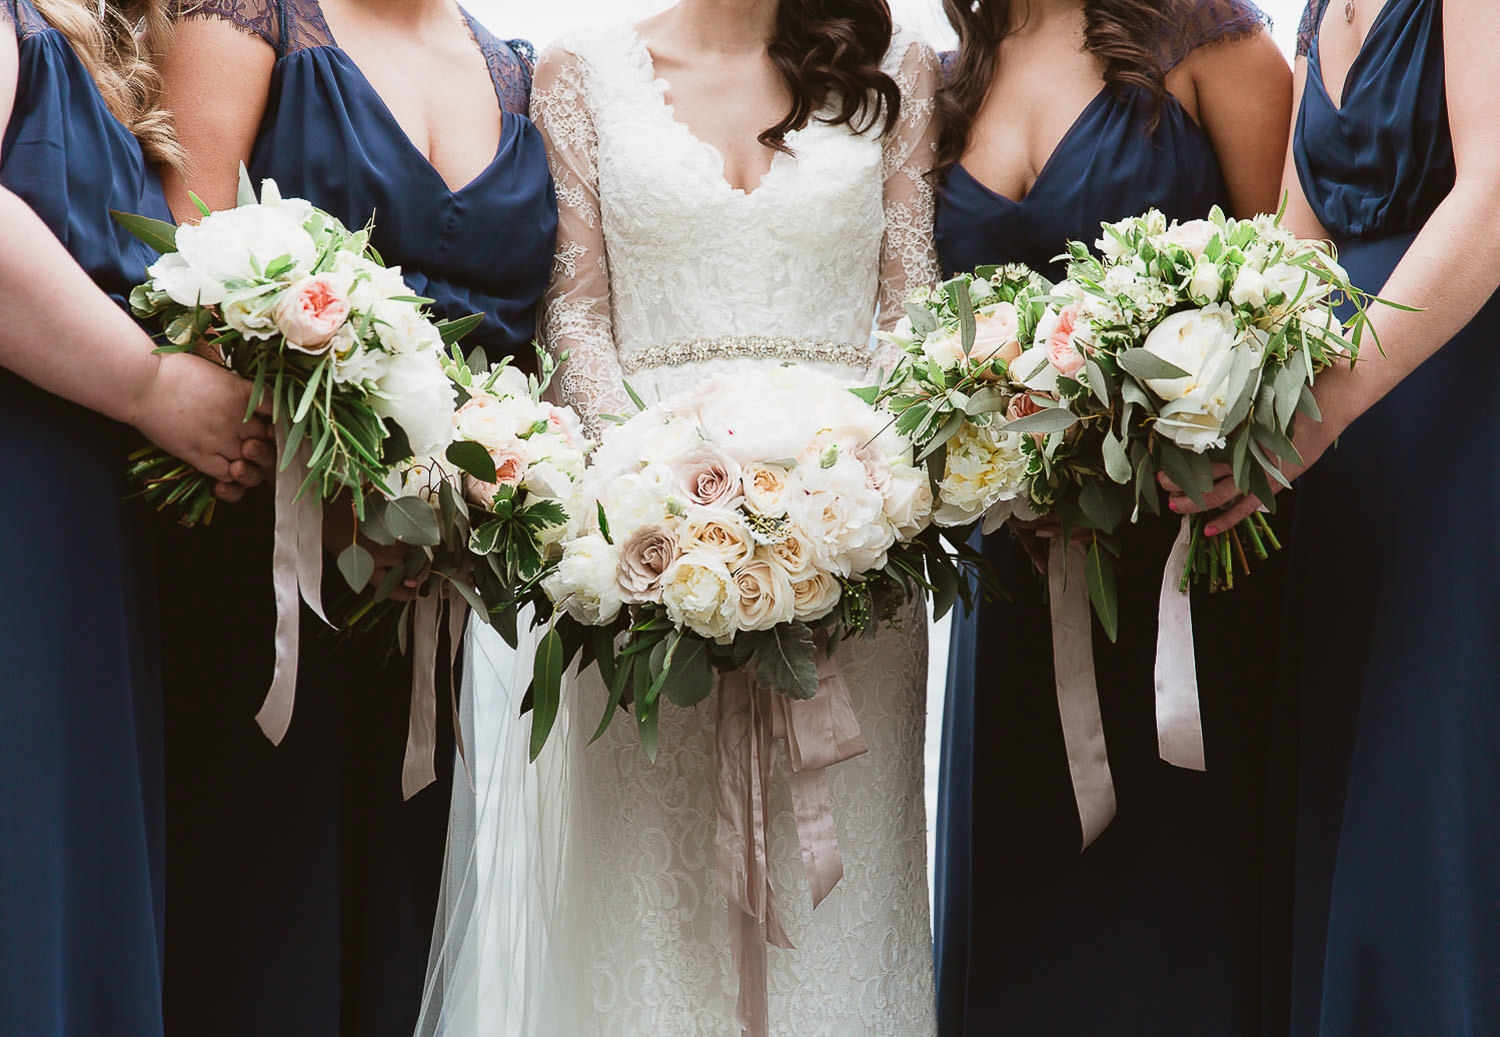 Stylish bridal party details | Photo: Camilla Anchisi